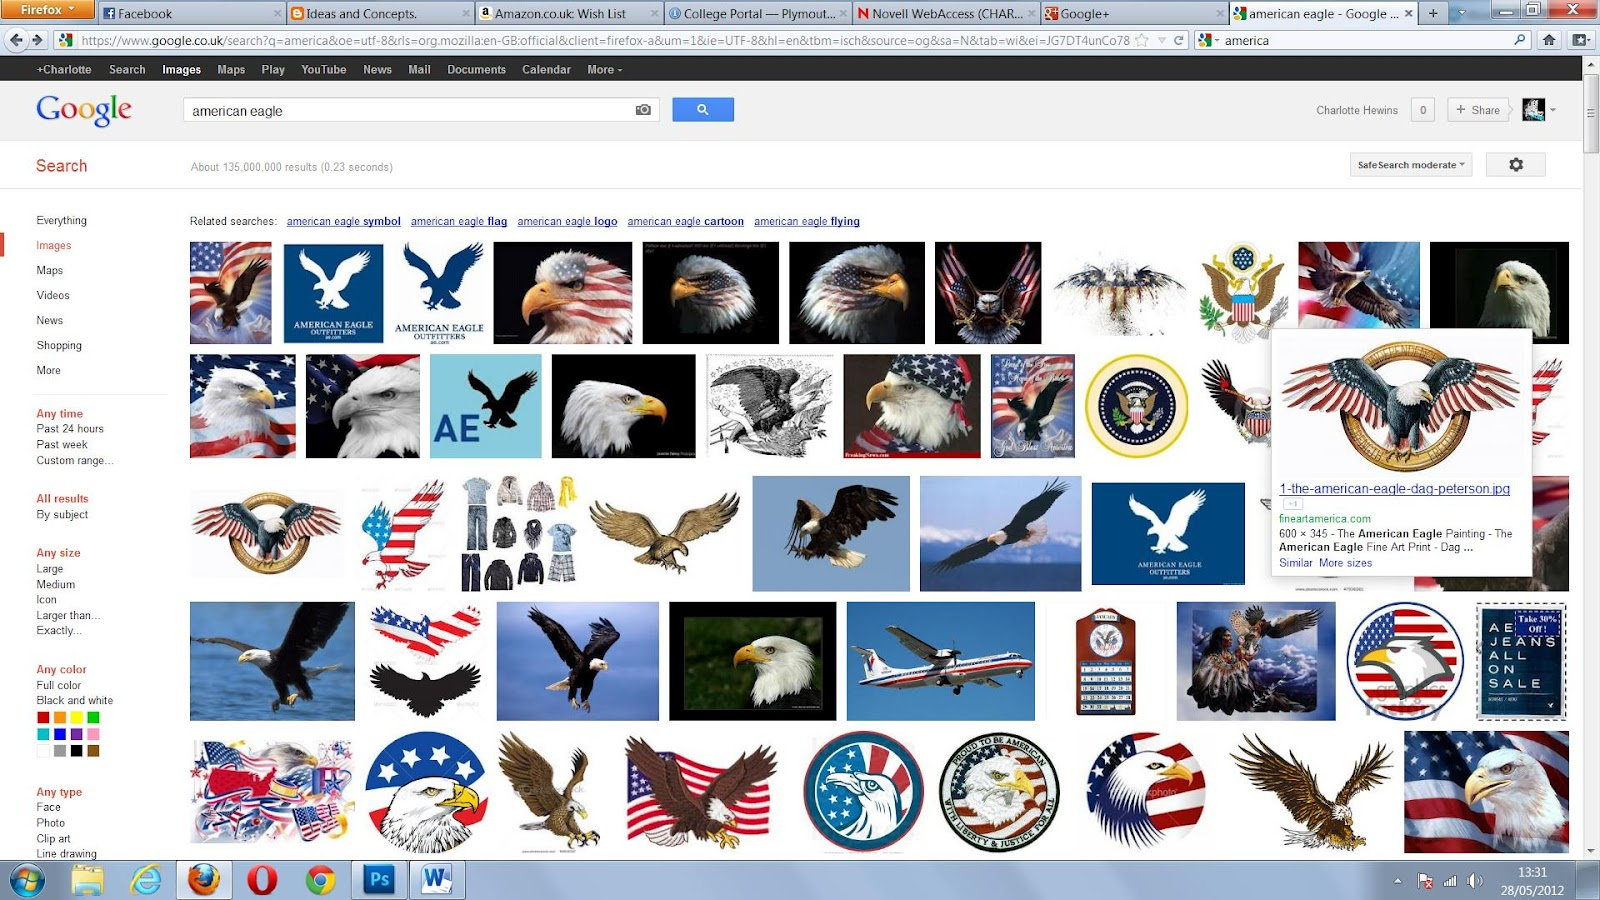 i typed in american eagle and one image of an eagle made to look like the american flag caught my eye so i made my own version of the eagle to put